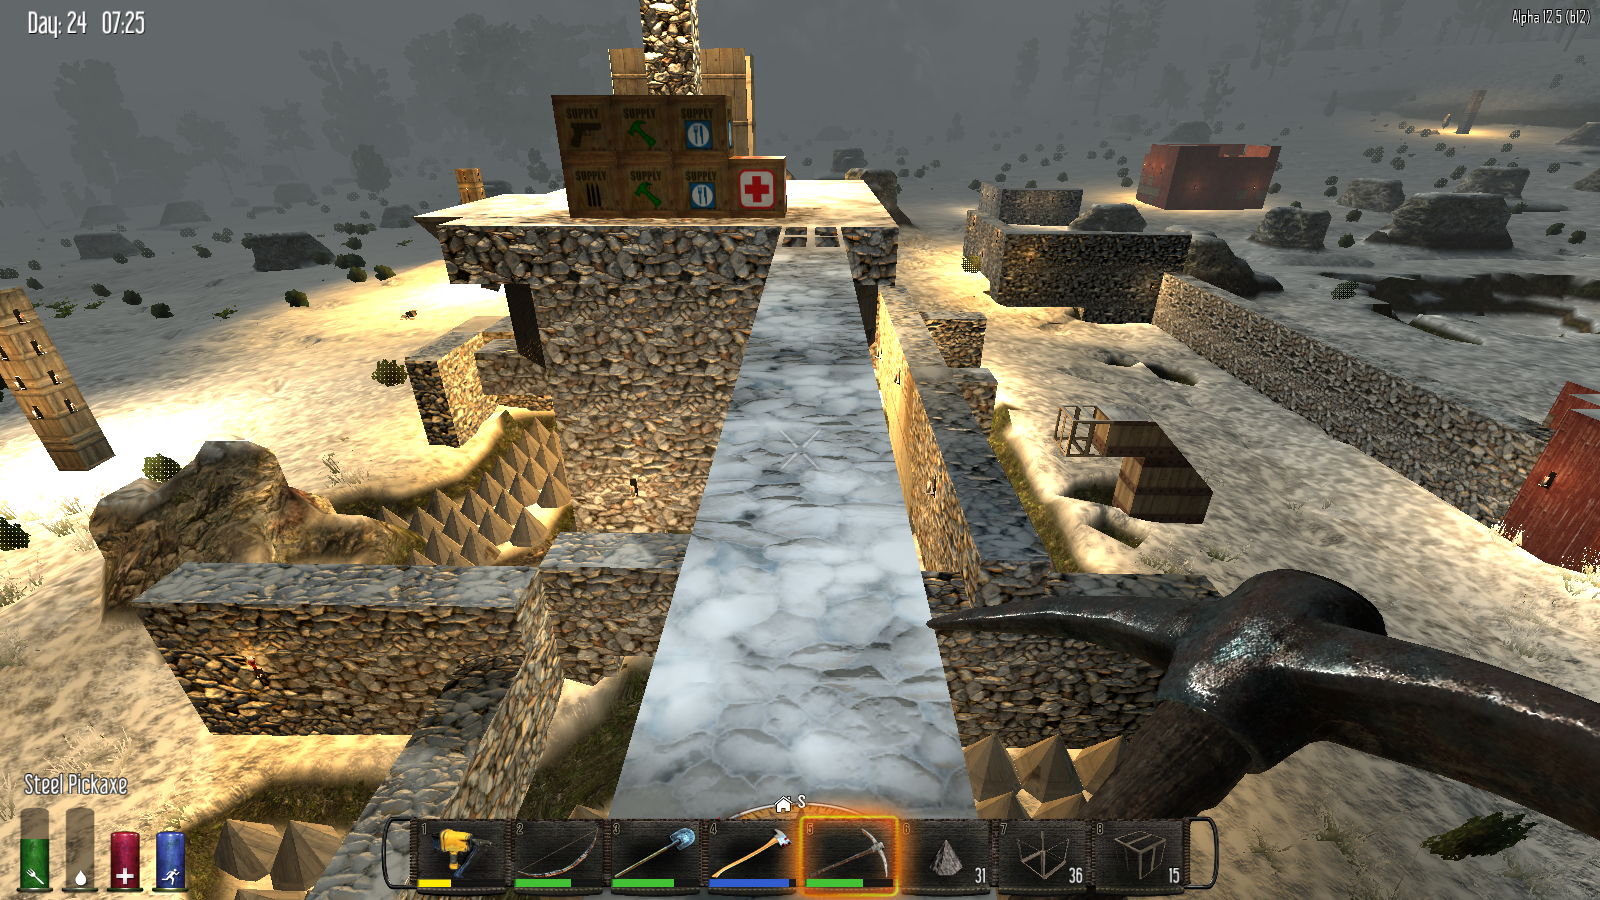 Working On The New Base In 7daystodie See My Latest 7 Days To Die Highlight Here Http Www Twitch Tv Pitstophead V 15179889 7 Days To Die Survival Games Day